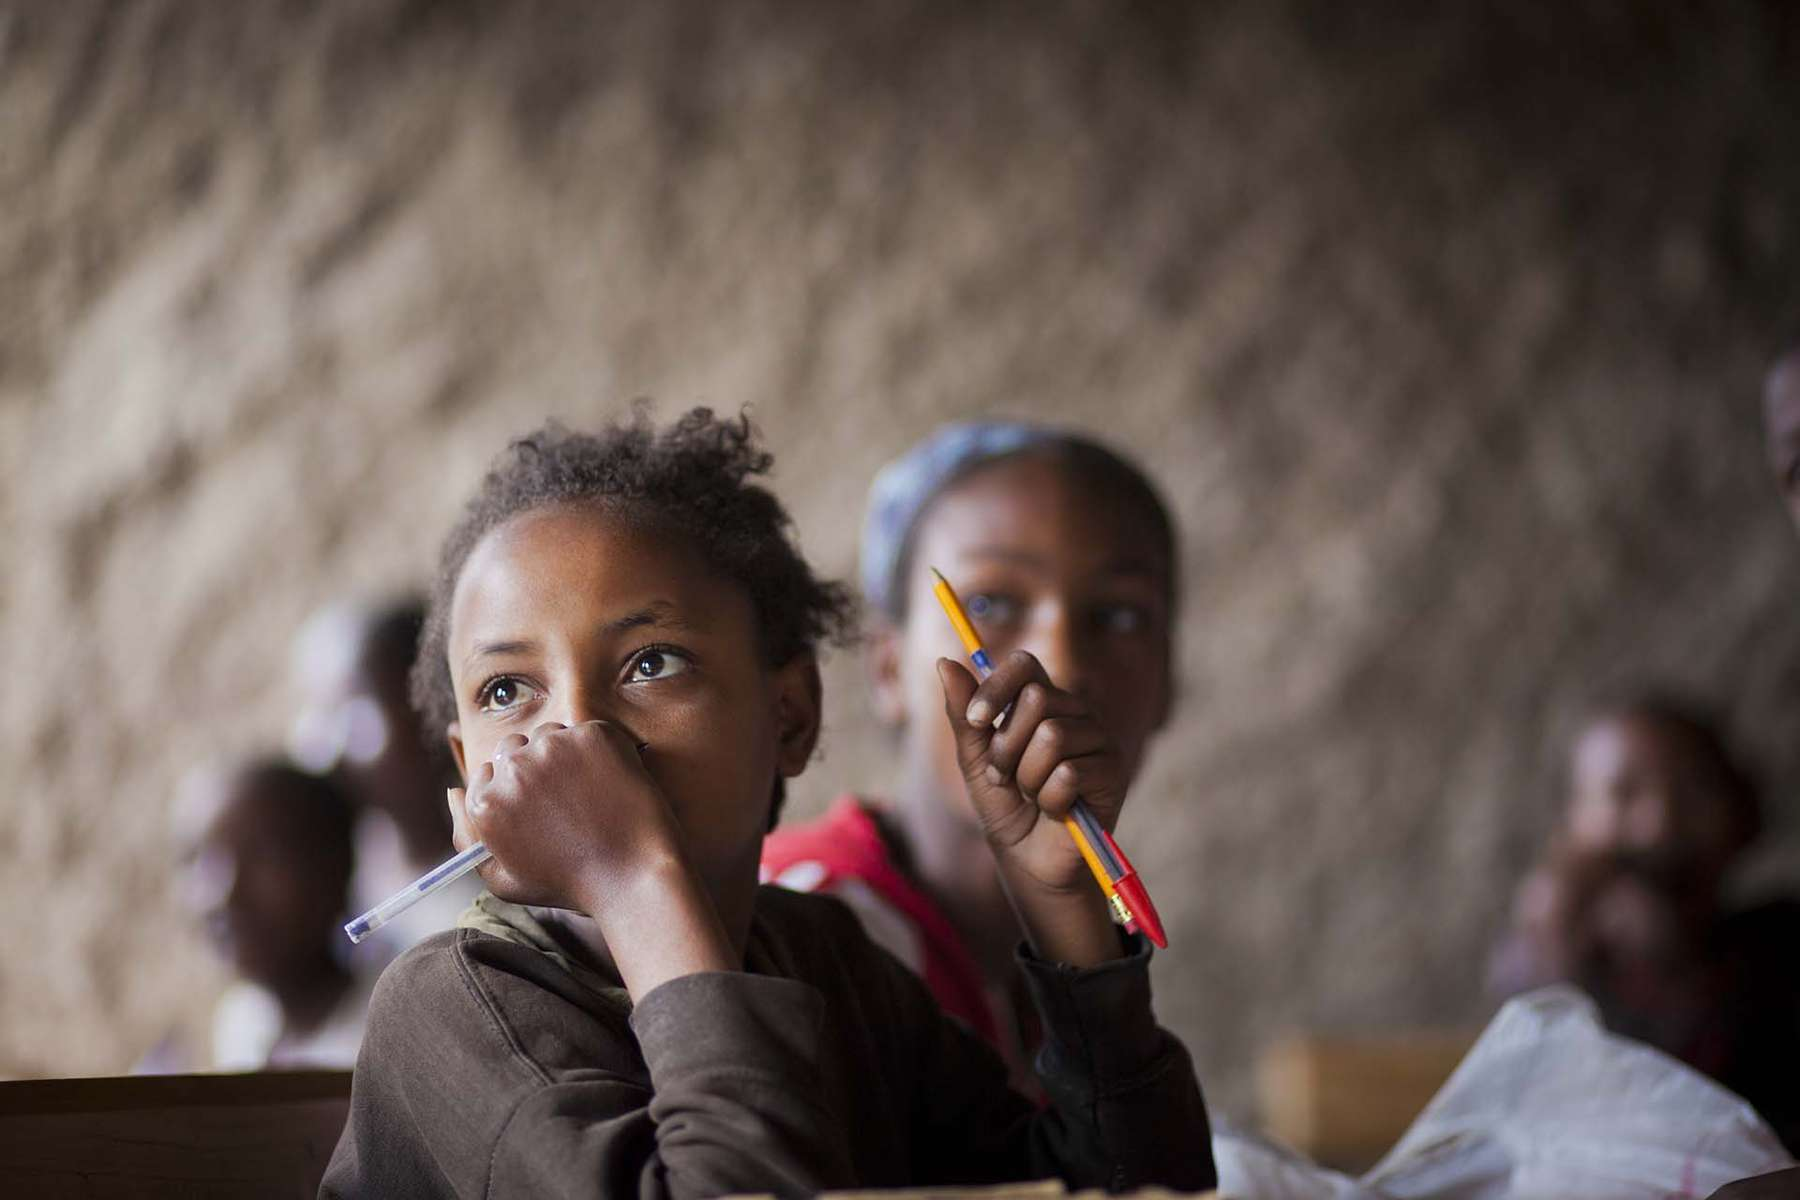 Bereket Brihanu, 11, listen to her teacher at Speed School class in Boricha in Oromia Region of Ethiopia November 29, 2011. Bereket, oldest of 3 siblings, dropped out of school at  2nd grade 2 years ago when her mother died. Her father is a laborer, and single income for the family could no longer afford 25 birr contribution fee for school (about 2 US dollars) and school supplies.  After her mother died, she was taking care of her baby brother at home. When she dropped out, she was not expecting to go back to school, started seeing herself as a mother of her younger brother. {quote}I was so happy to be back in school with children with my age, my friends,{quote} she said.  She wants to become a pilot because she once saw a female pilot on TV show.